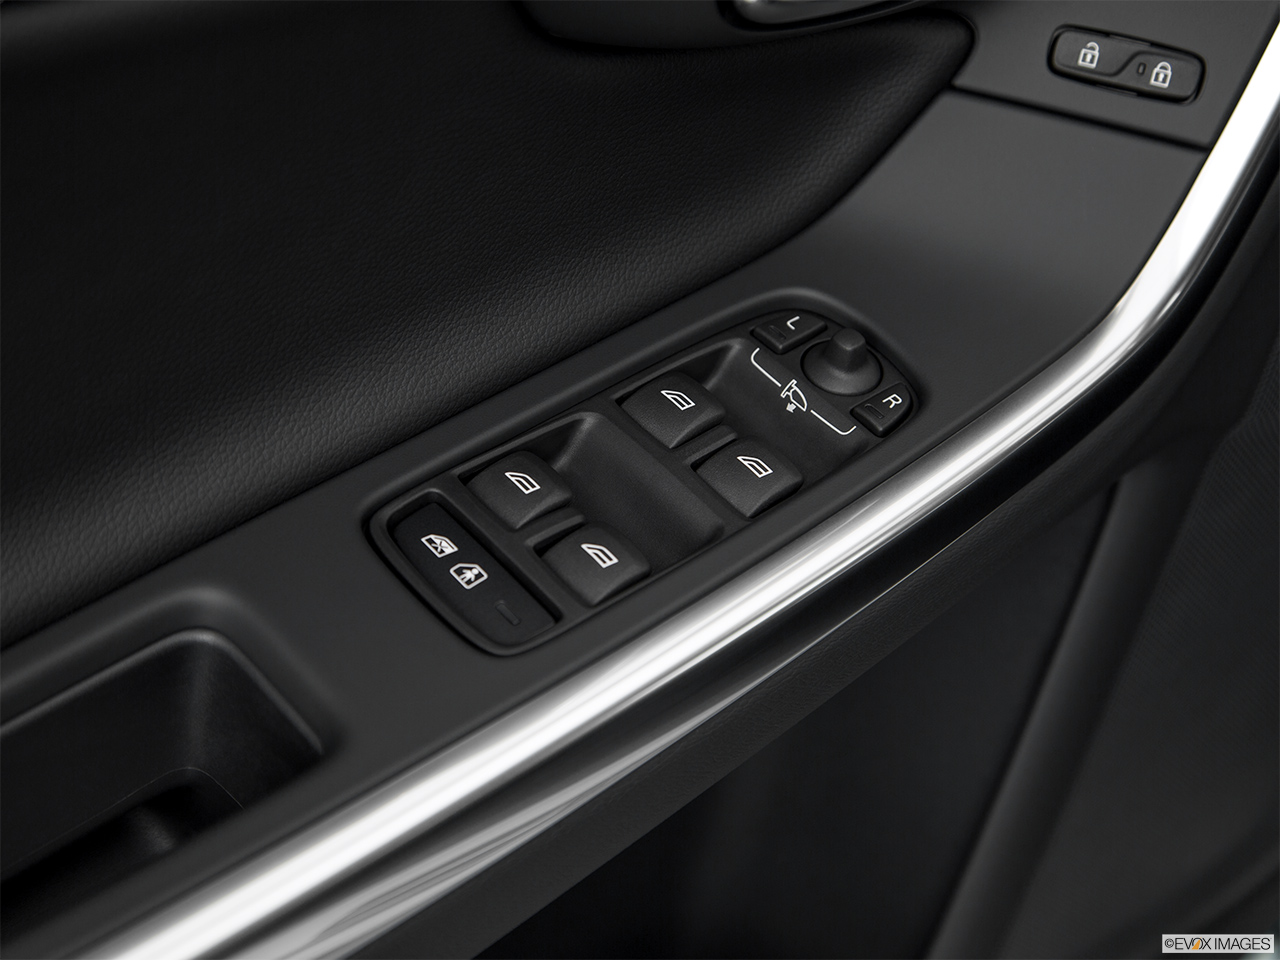 2018 Volvo V60 Cross Country T5 AWD Driver's side inside window controls.